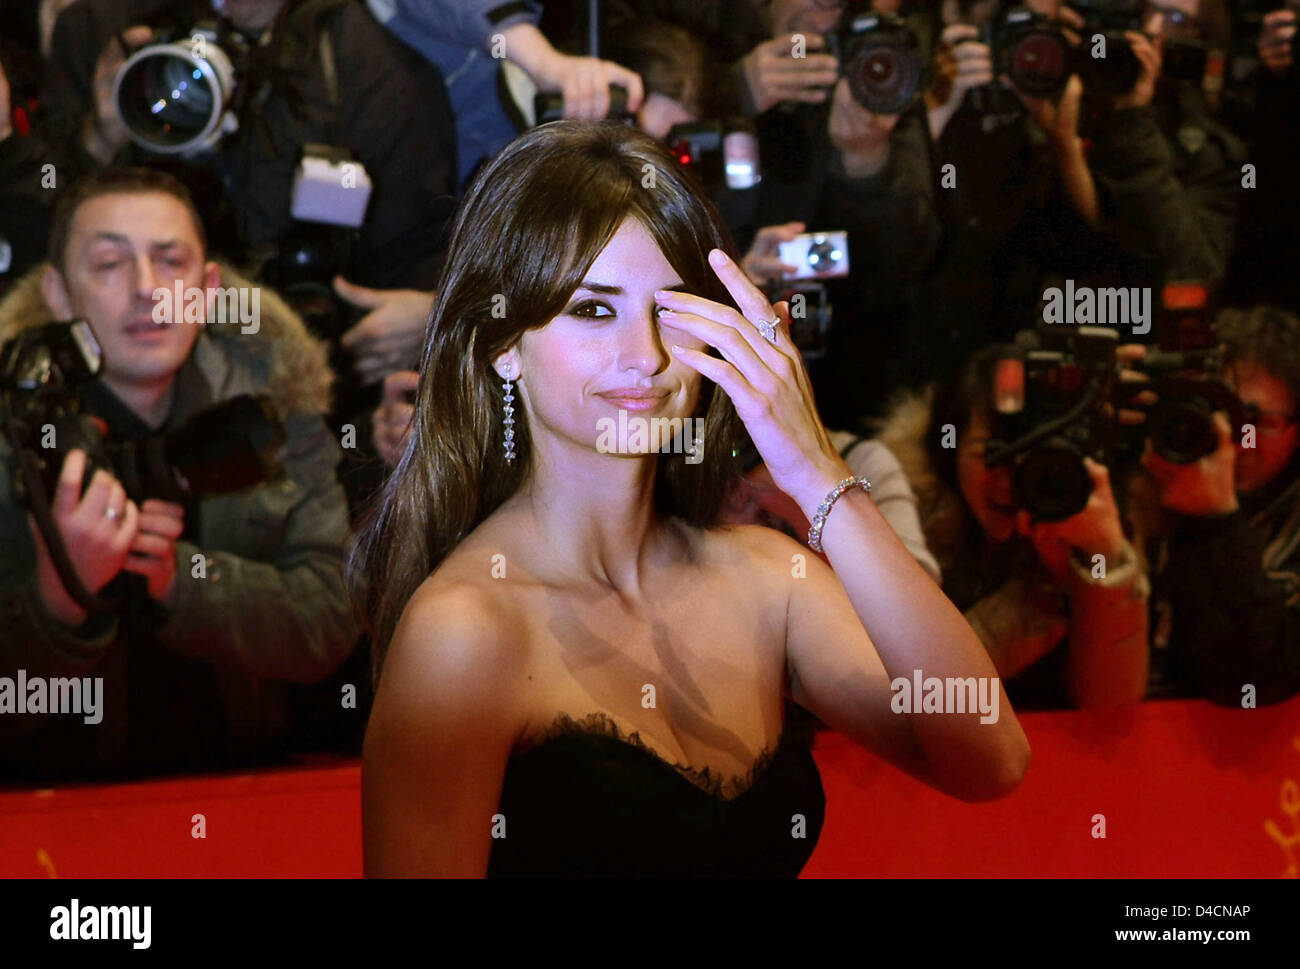 Spanish actress Penelope Cruz arrives for the premiere of her film 'Elegy' at the 58th Berlin International - Stock Image